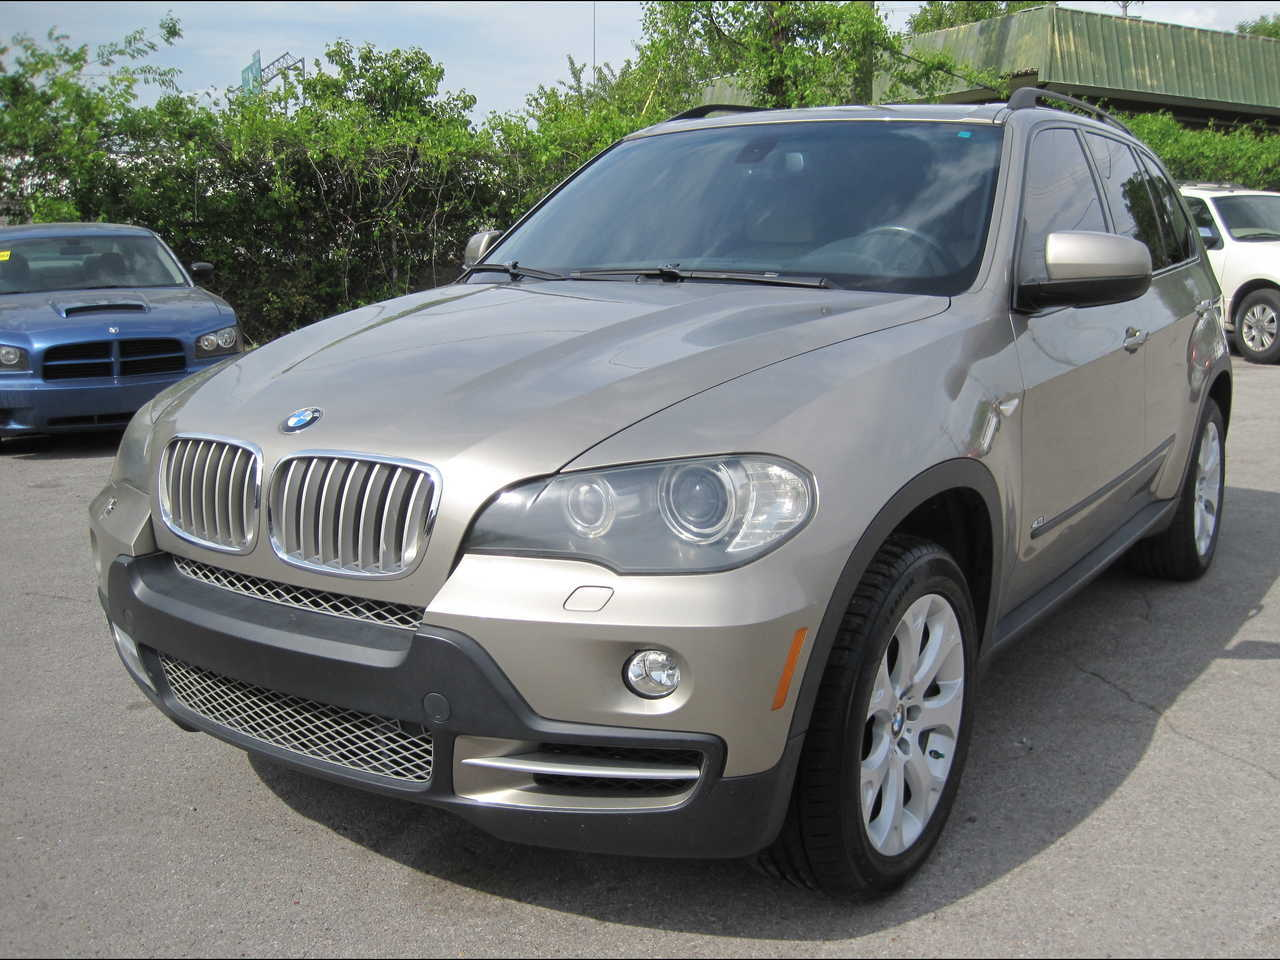 Used Cars Nashville Tn >> Used Inventory Used Cars Nashville Dealer The Best Buy Here Pay